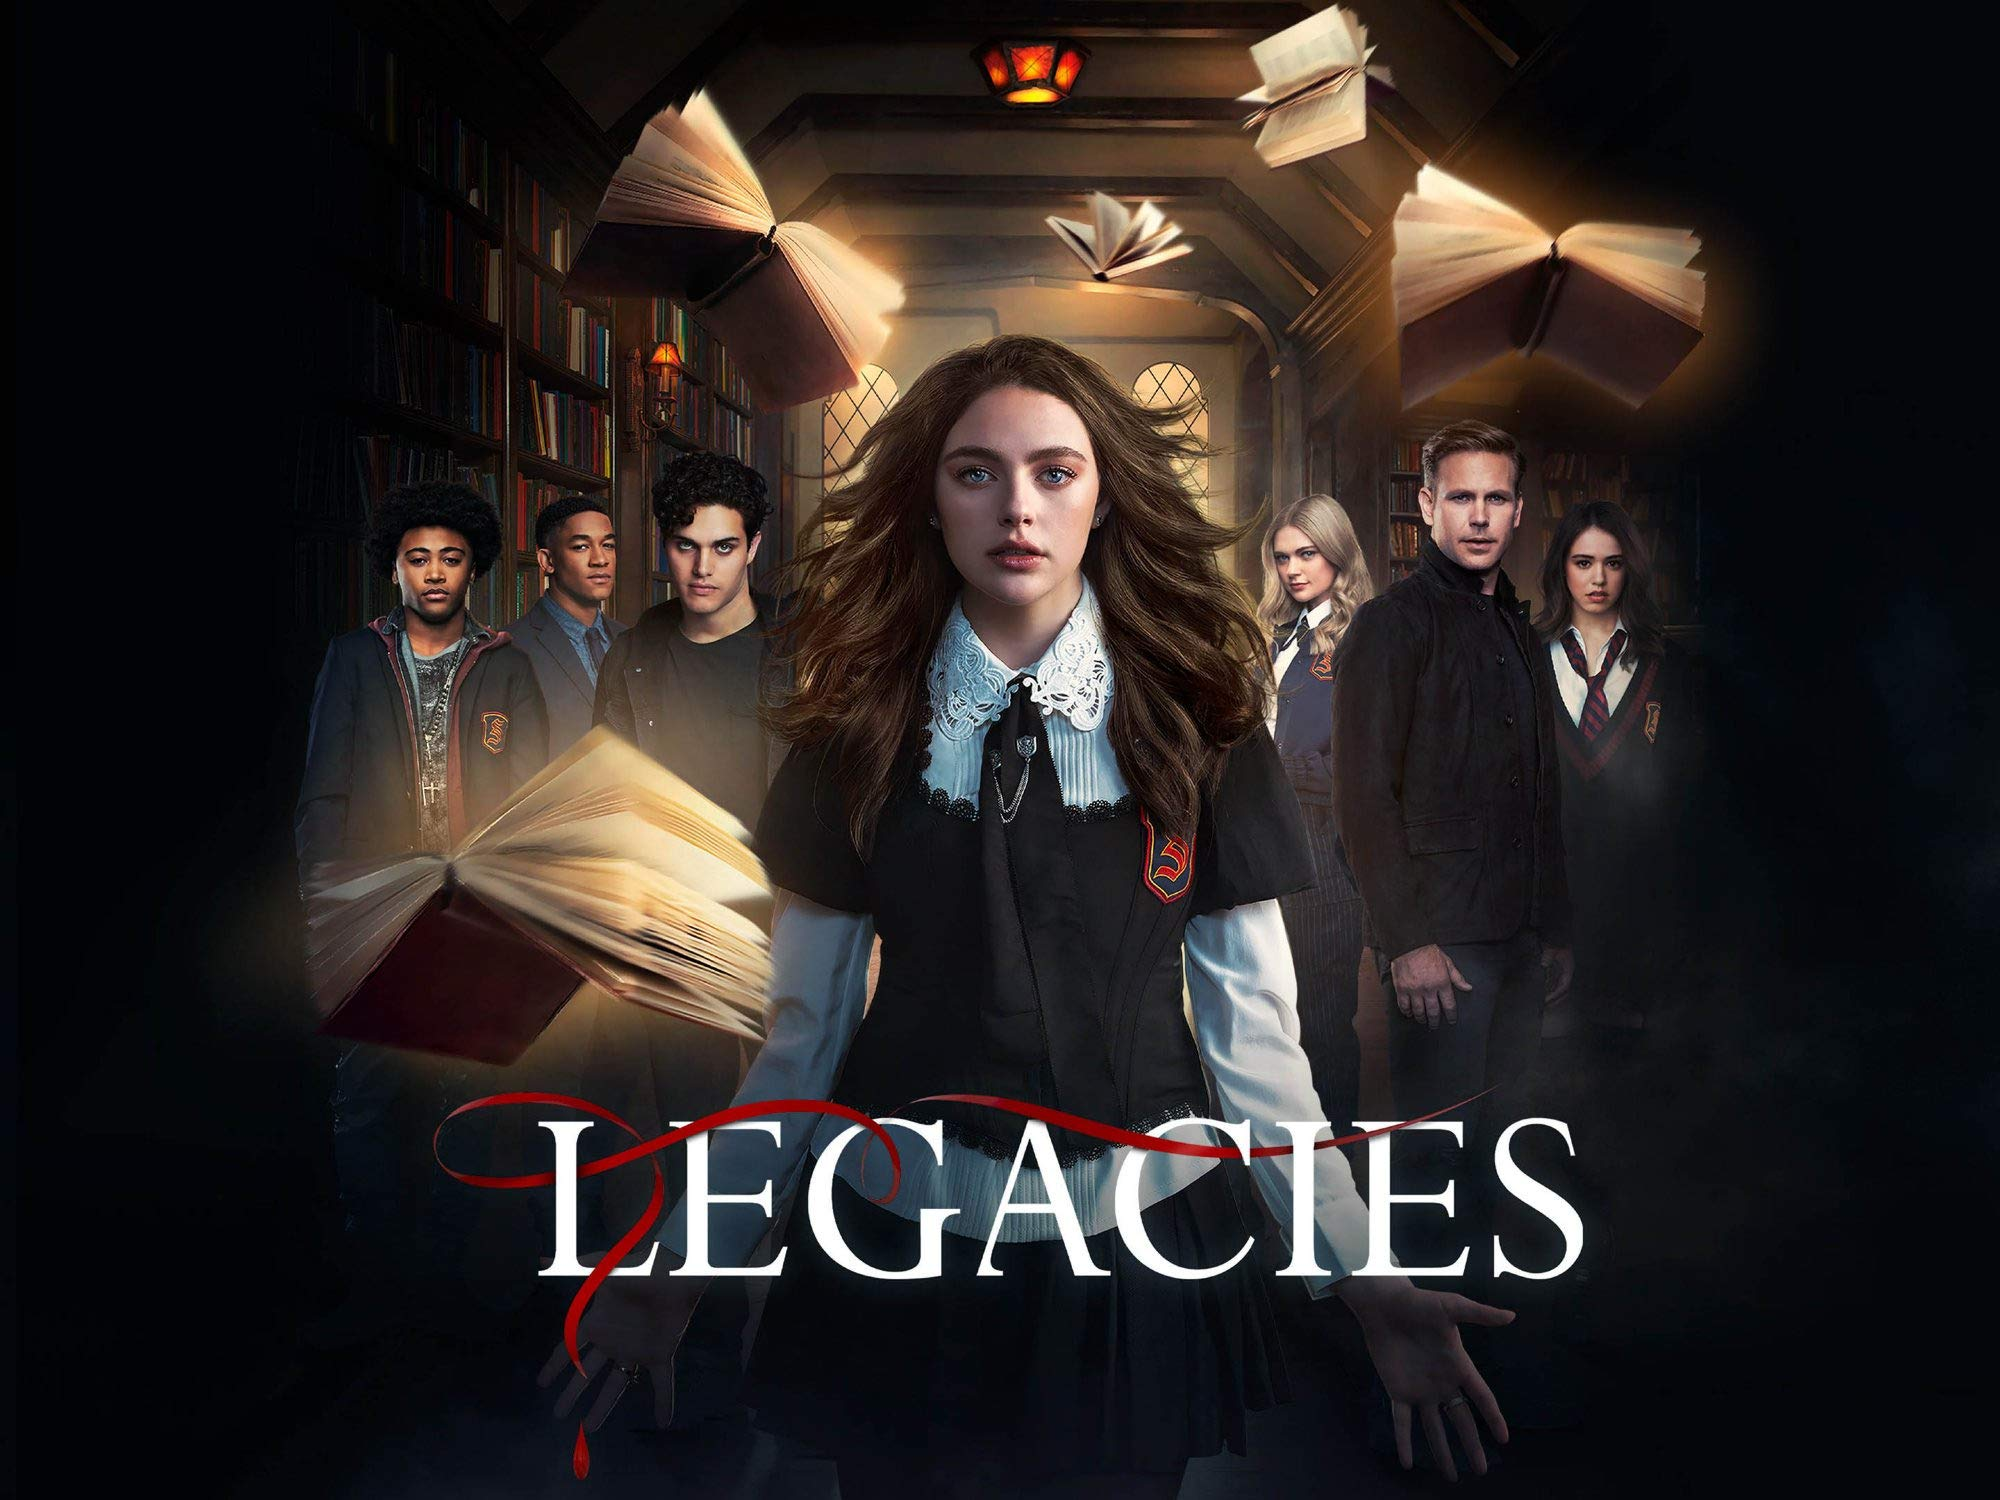 """Legacies"" Season 2, Episode 9 - Check out The Full Review"